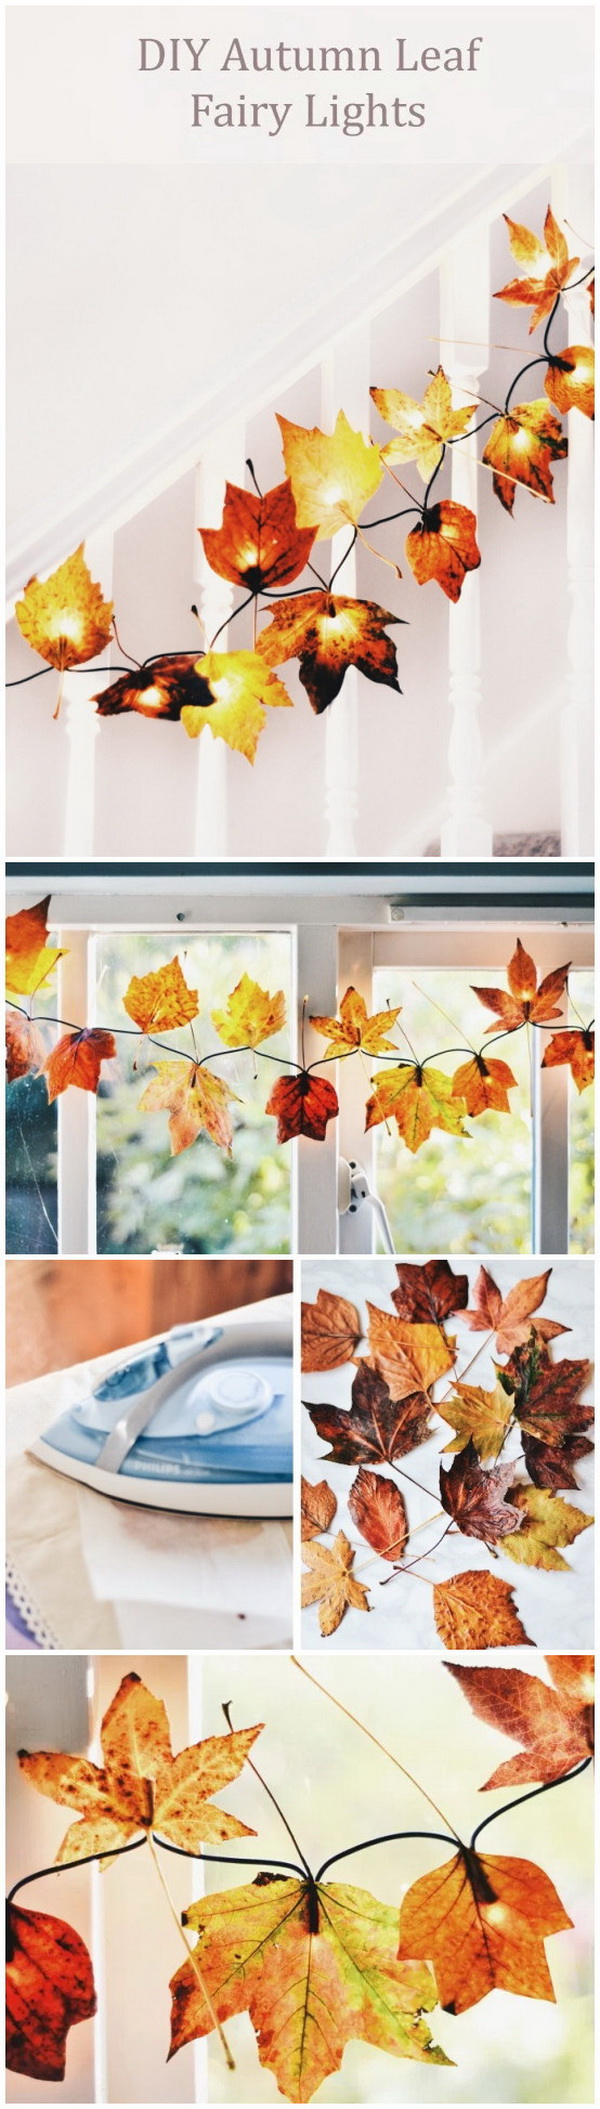 DIY Autumn Leaf Fairy Lights. Bring some autumn decor into your home with this stunning project! All you need is a string of fairy lights, a collection of beautiful fall leaves, waxed paper and some Uhu glue.